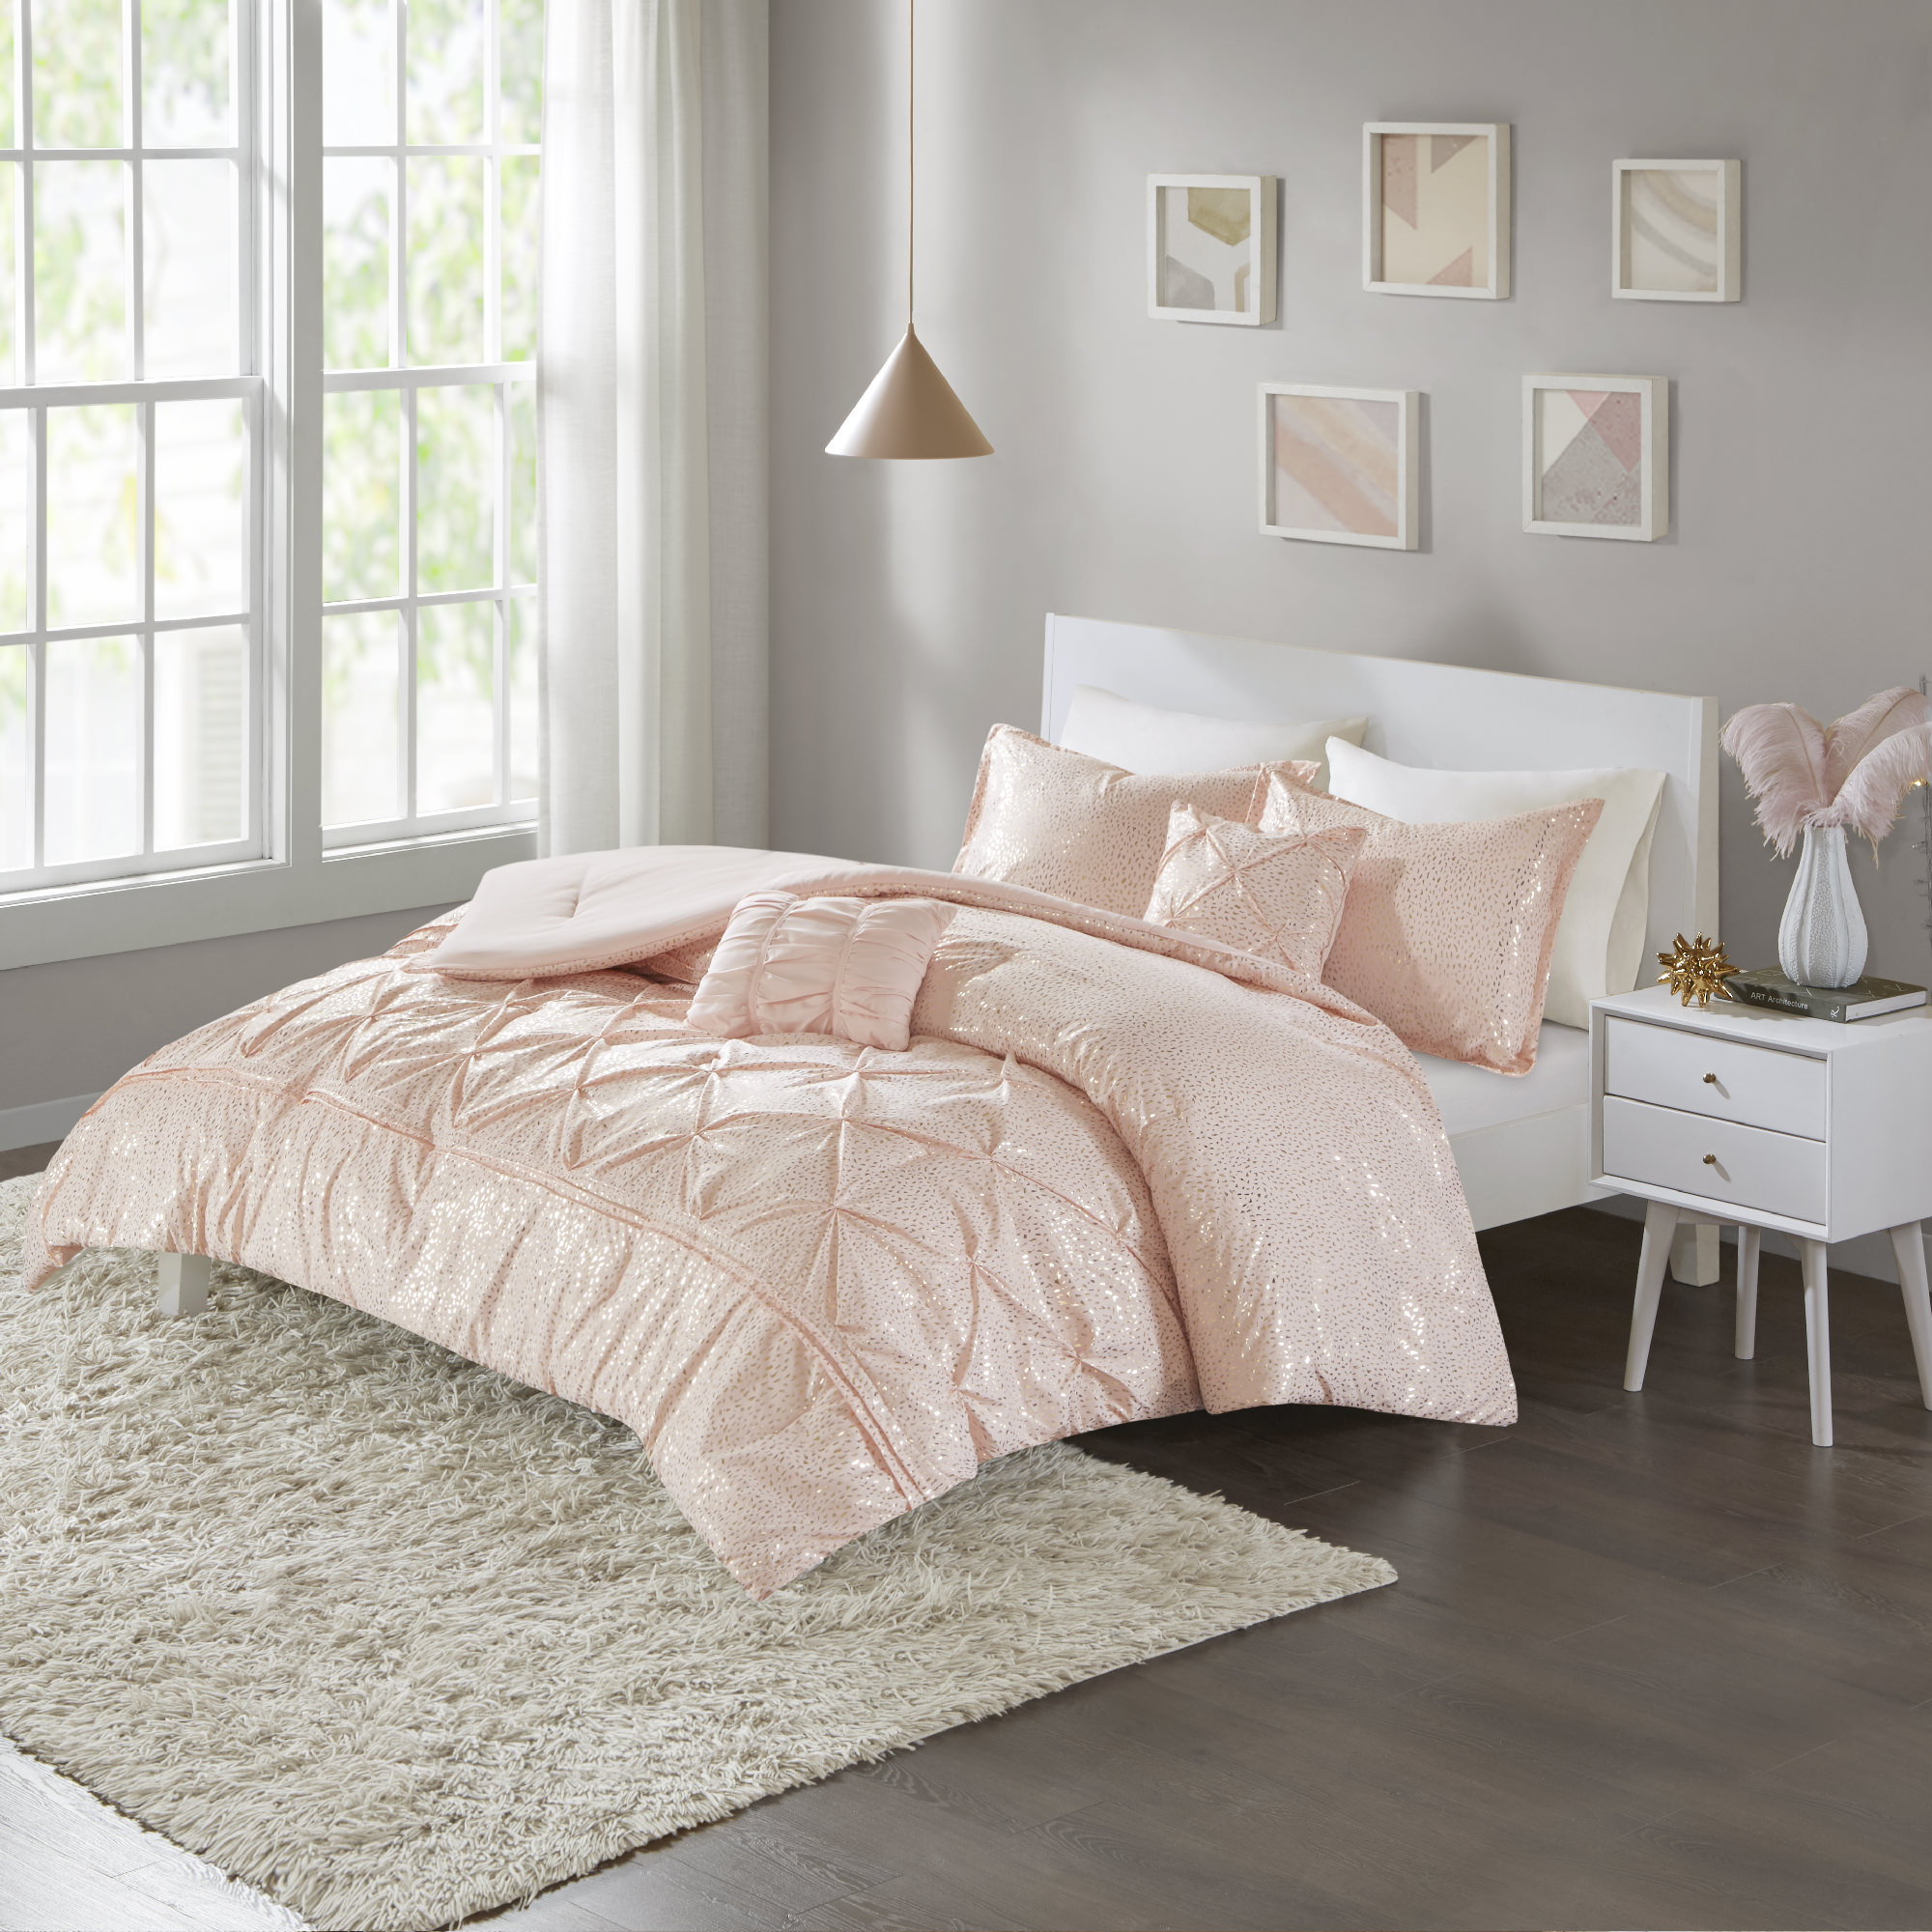 Home Essence Apartment Melody Metallic Comforter Set